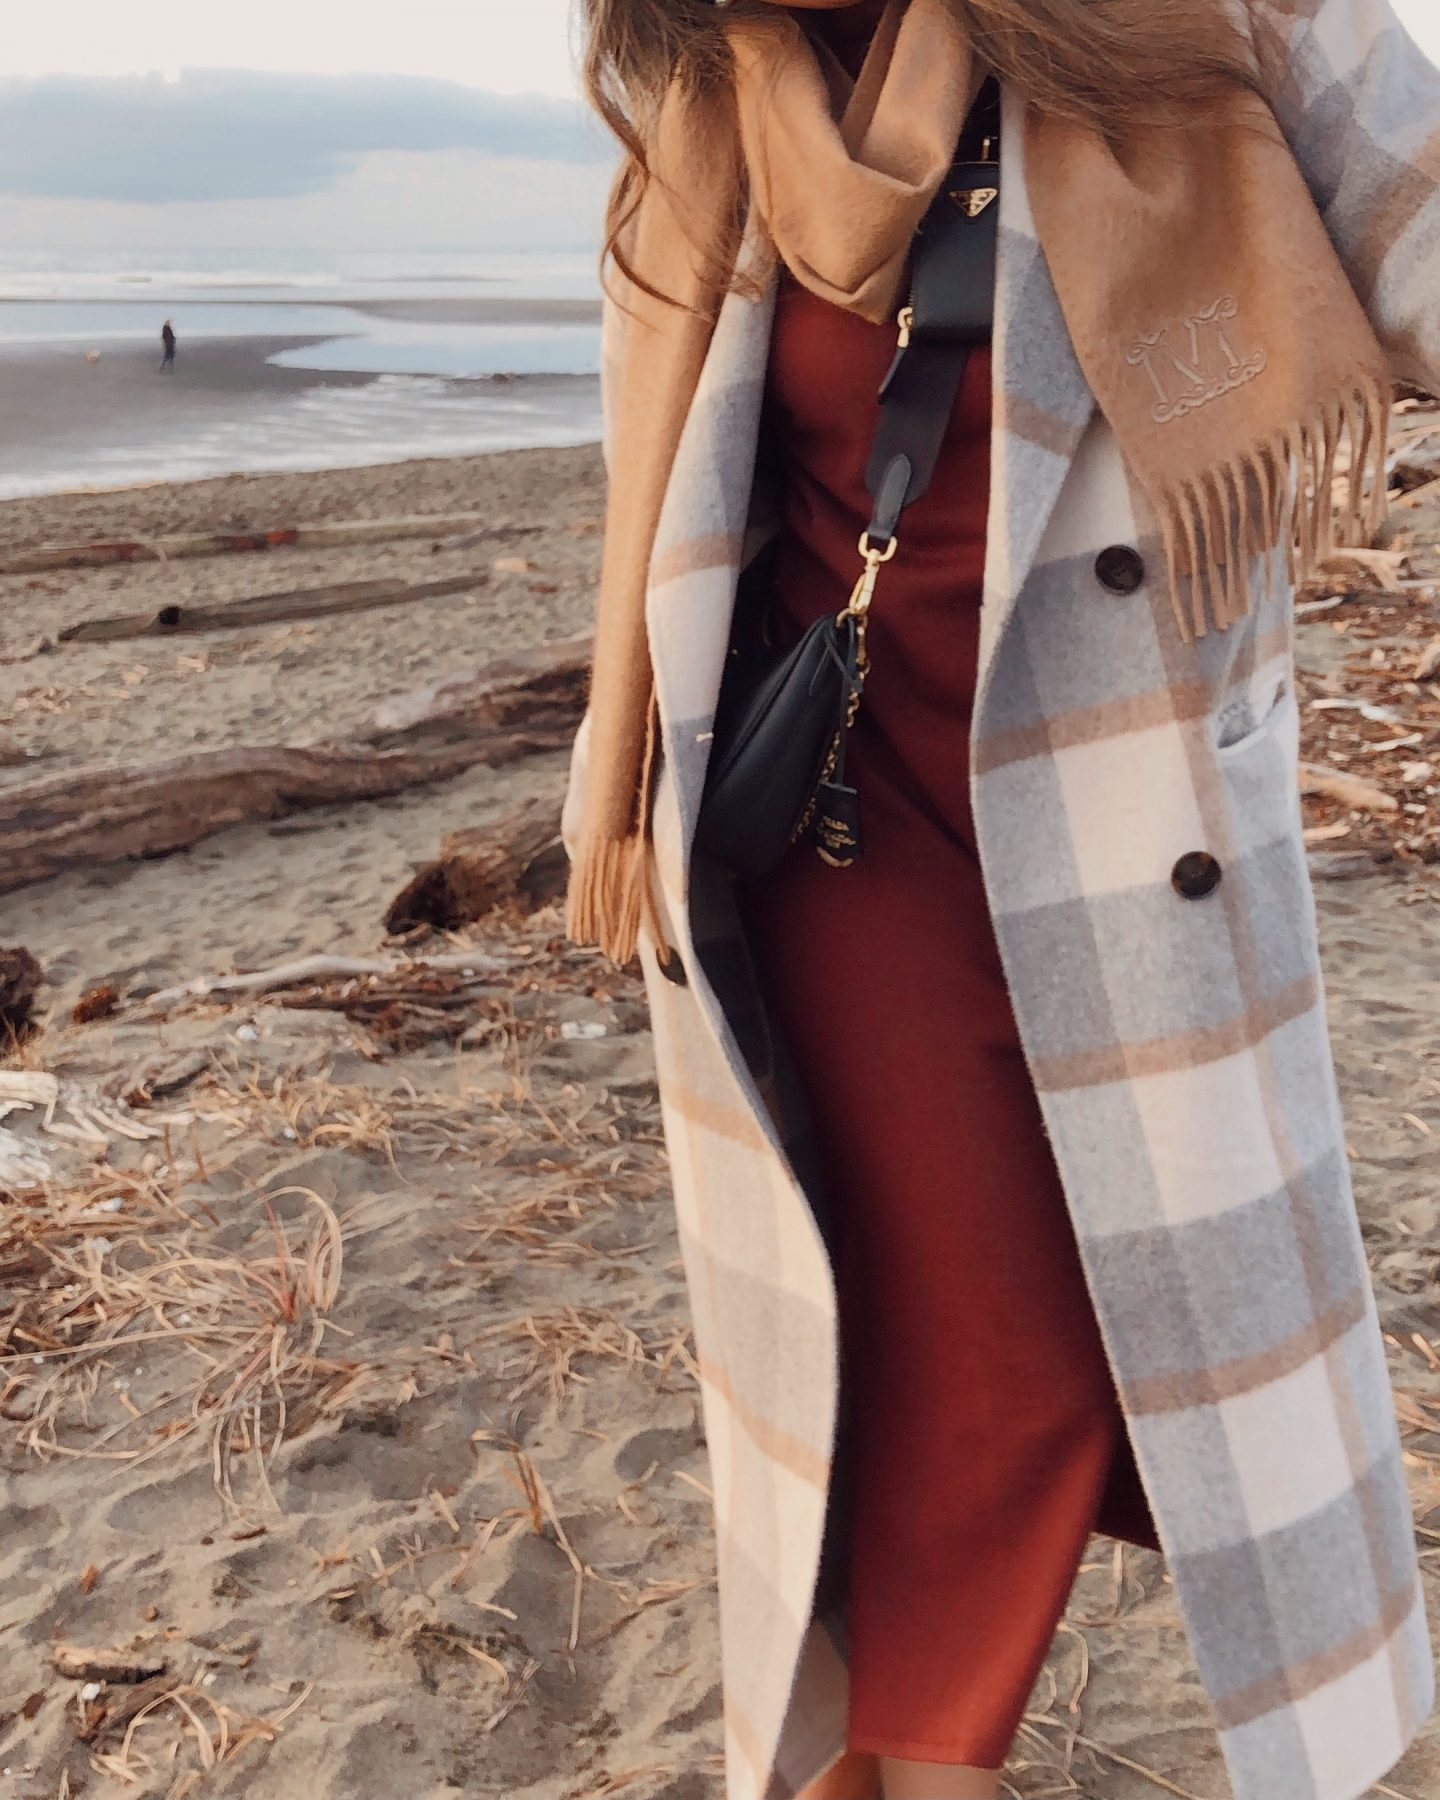 trying out a different photo angle on the beach with my plaid coat and scarf on a winter day